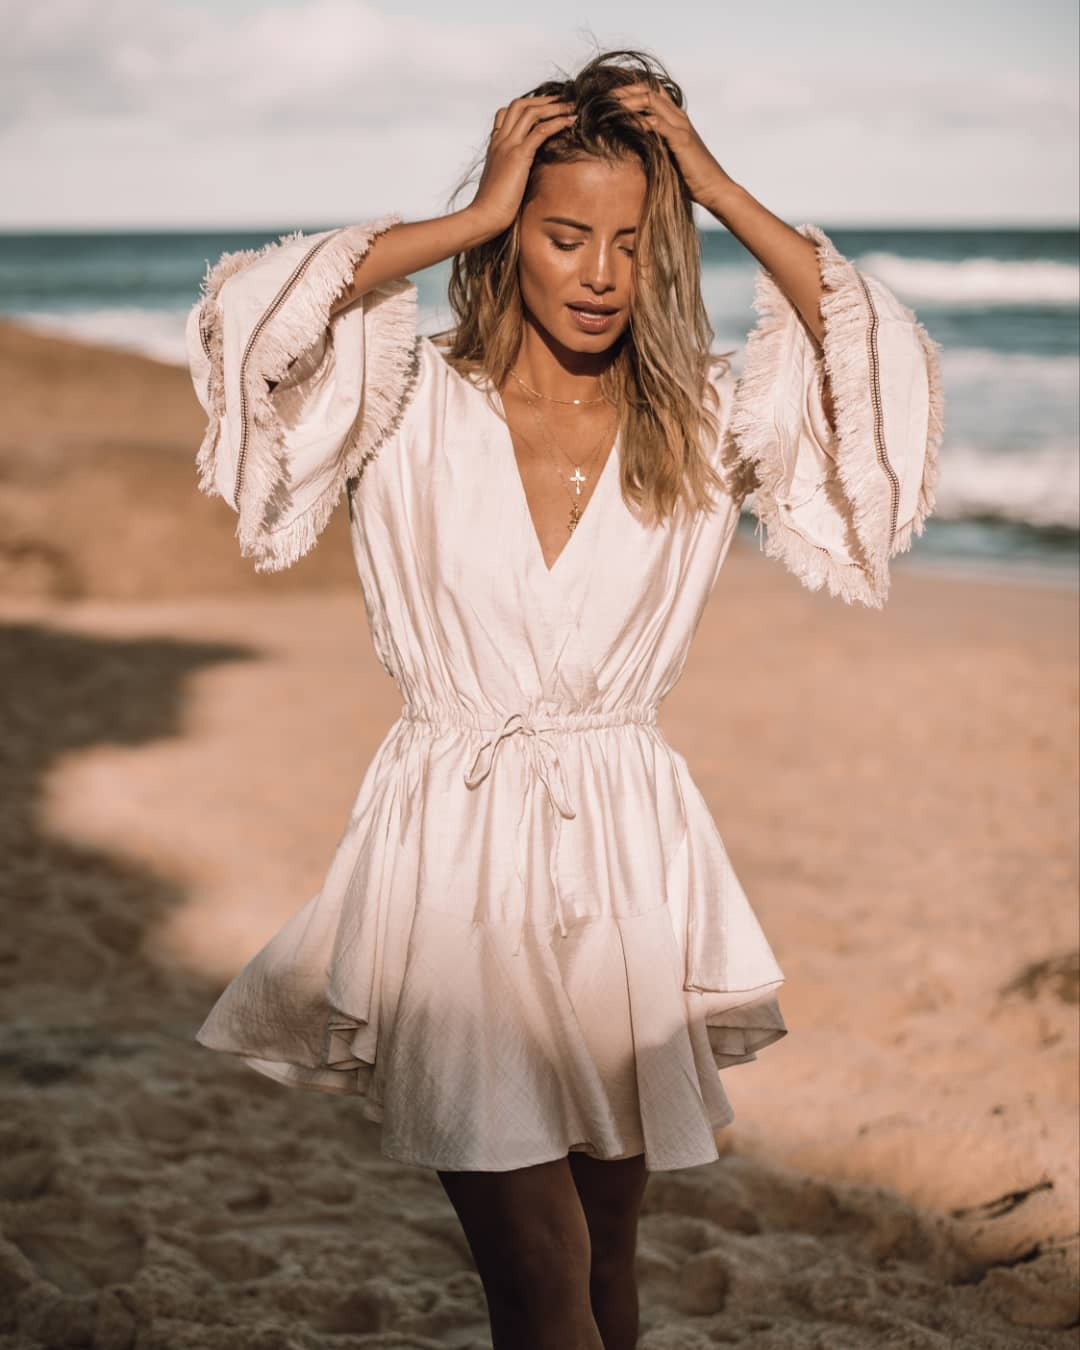 Pastel Mini Robe Dress With Wide Sleeves For Summer Beach Walks 2020